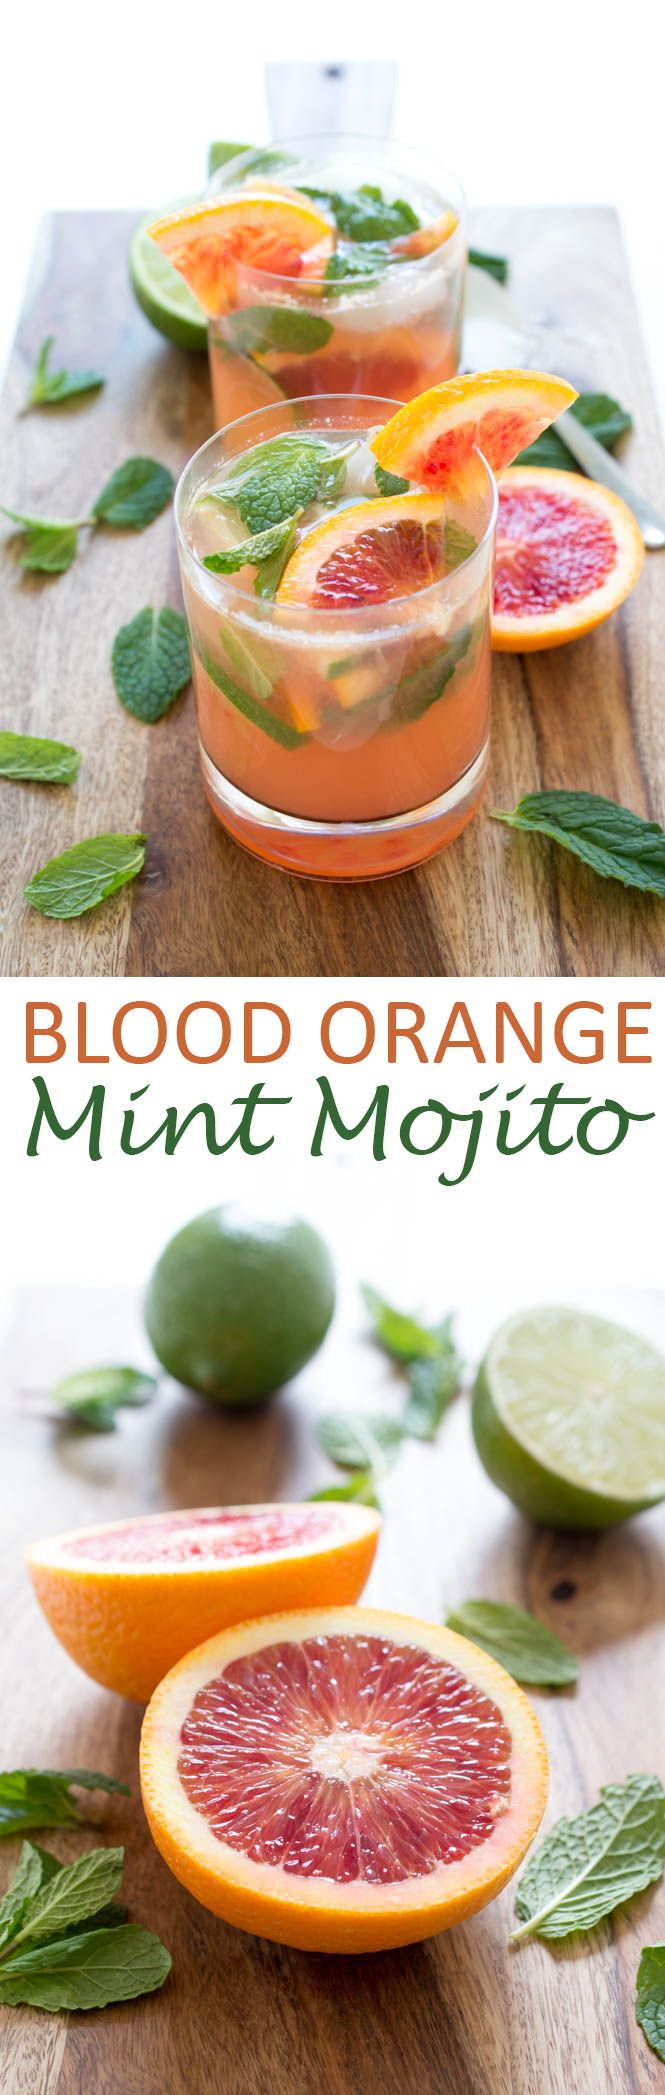 Blood Orange Mojito made with fresh mint, simple syrup, blood orange and lime juice